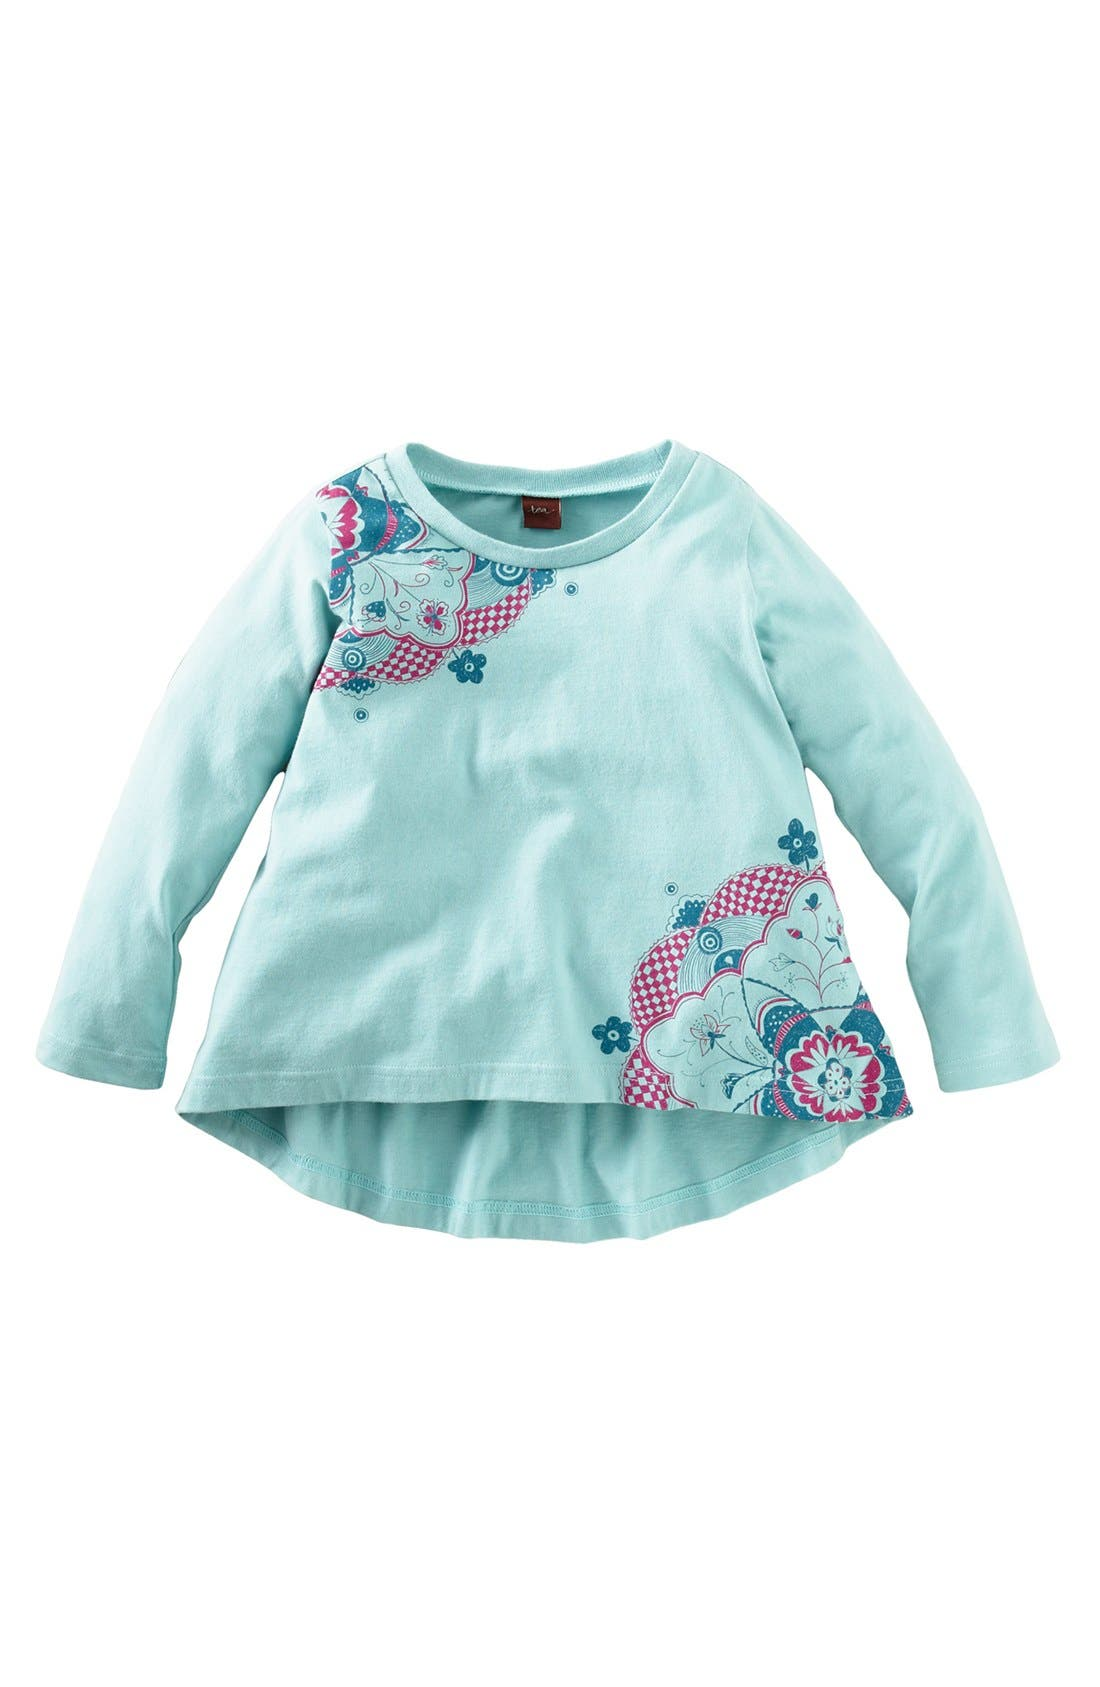 Main Image - Tea Collection 'Love Bird' High/Low Top (Little Girls & Big Girls)